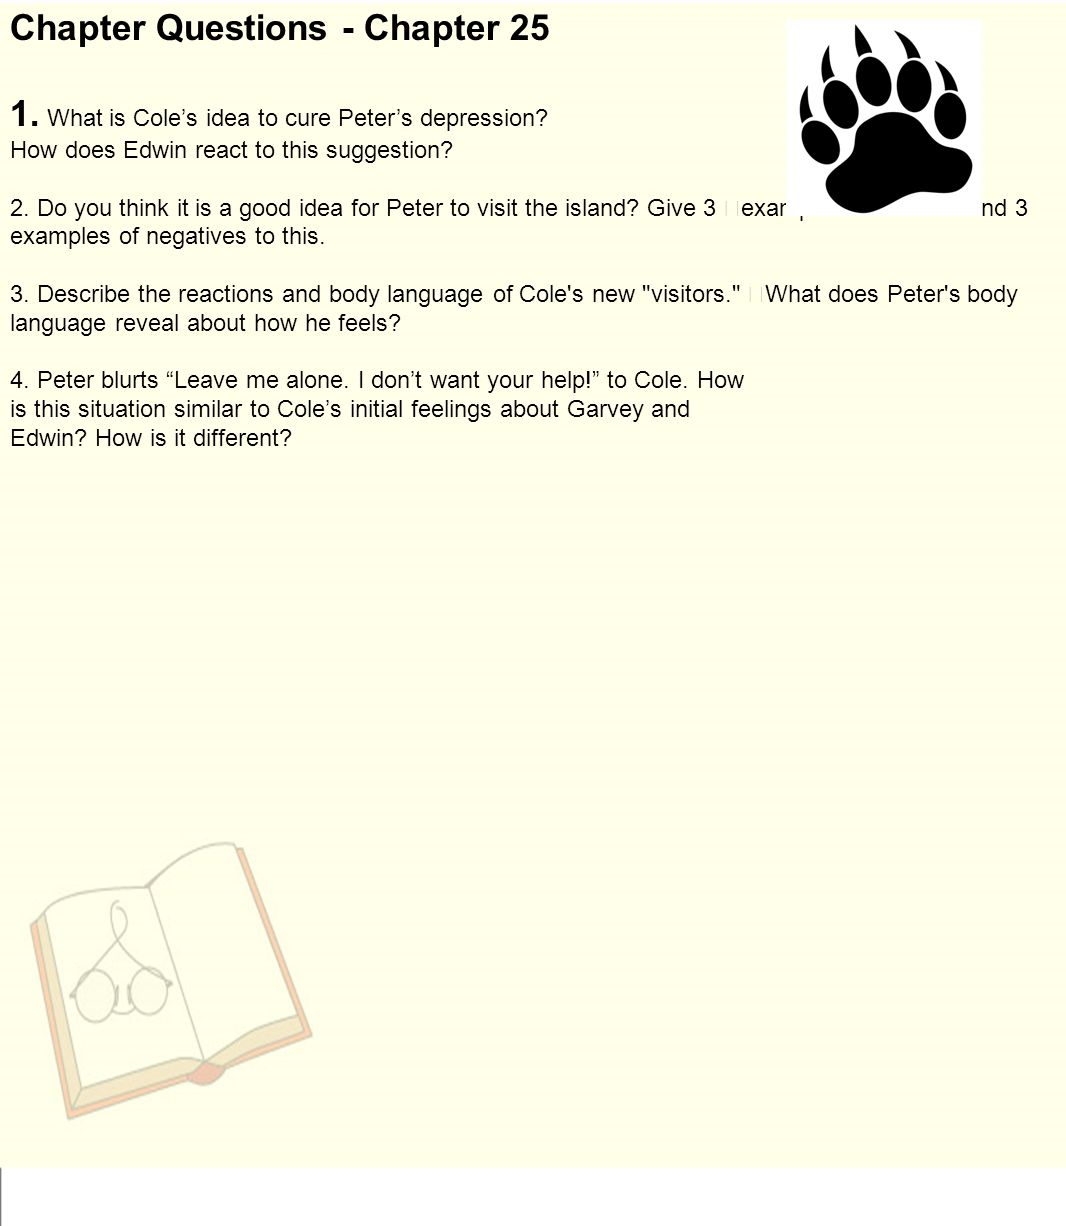 chapter 25 questions Lesson 19 of a series of bible studies on the gospel of matthew: 25:1-26:5  chapter 25 concludes the  these readings and study questions are in preparation.